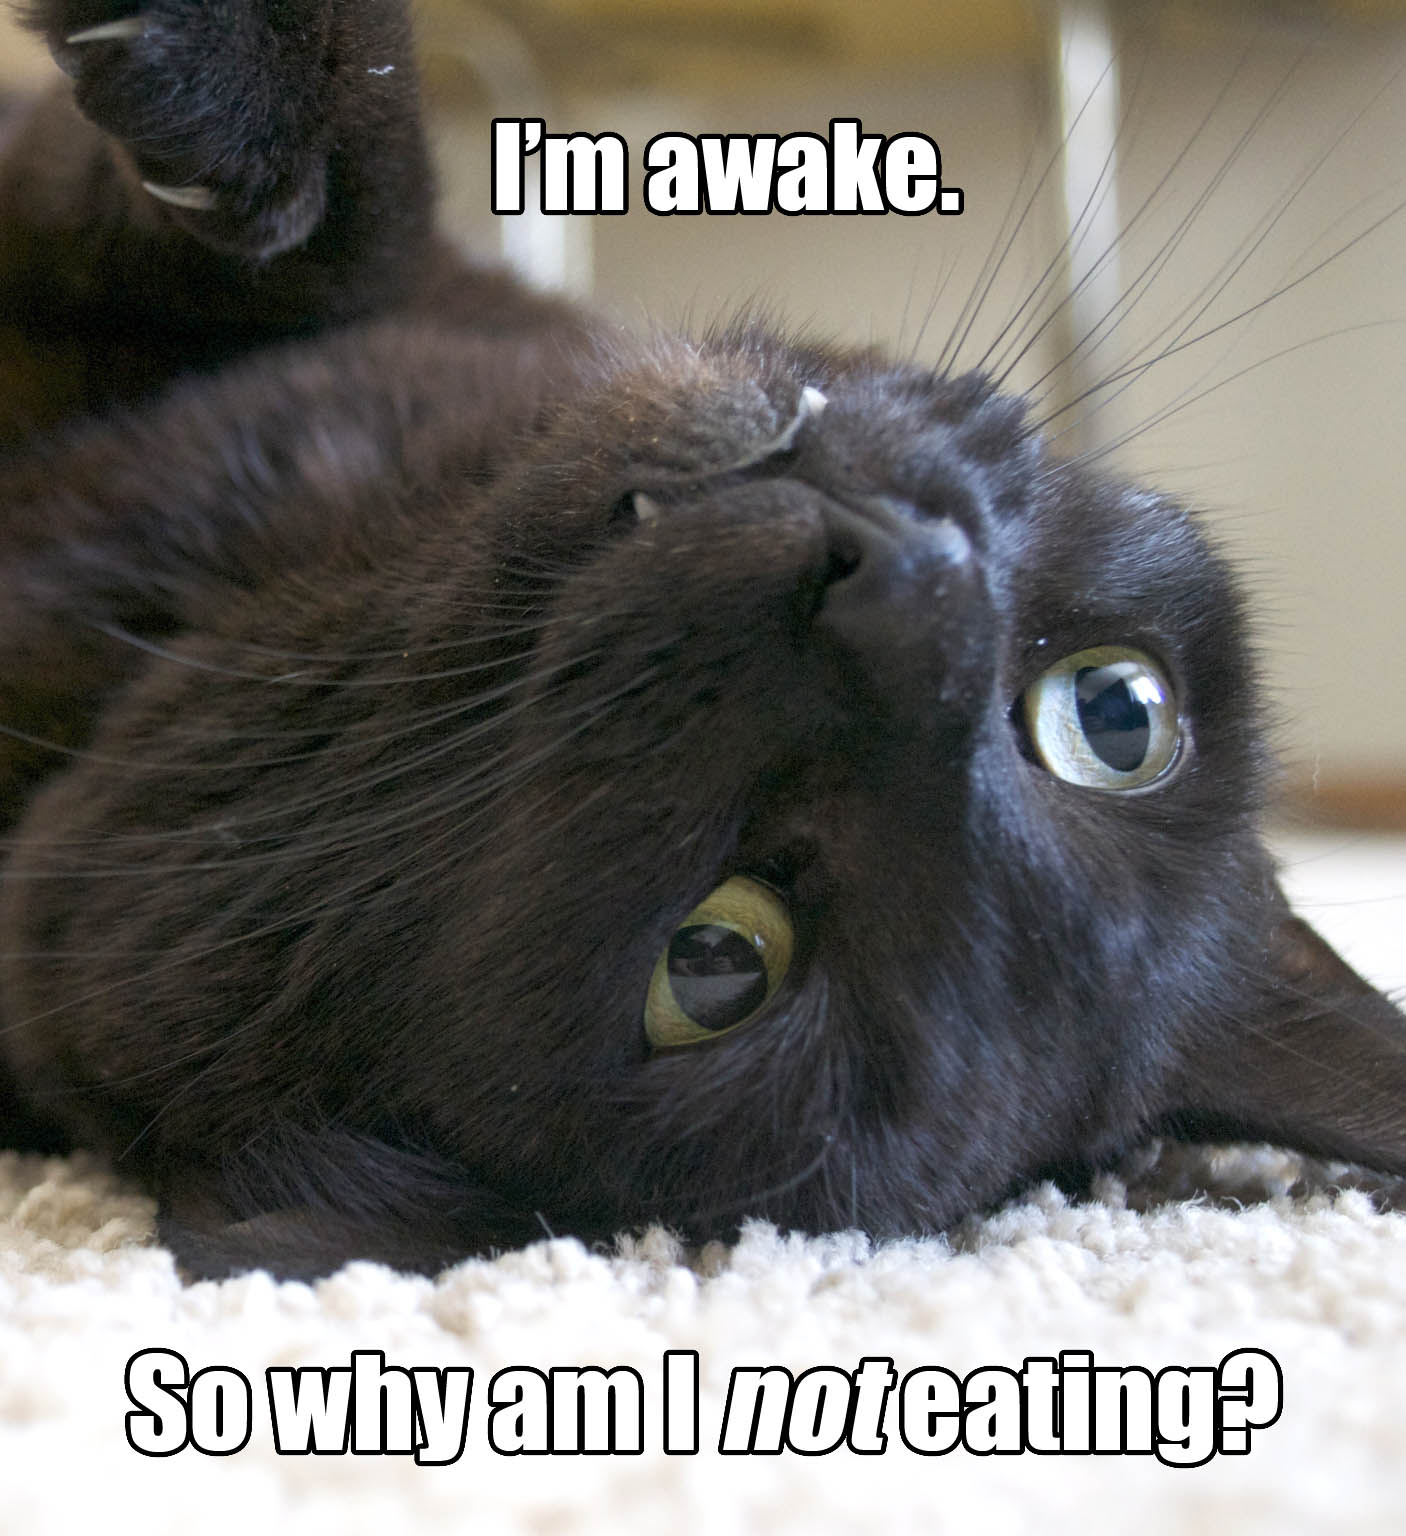 cat_inner_thoughts_im_awake_so_why_am_i_not_eating.jpg